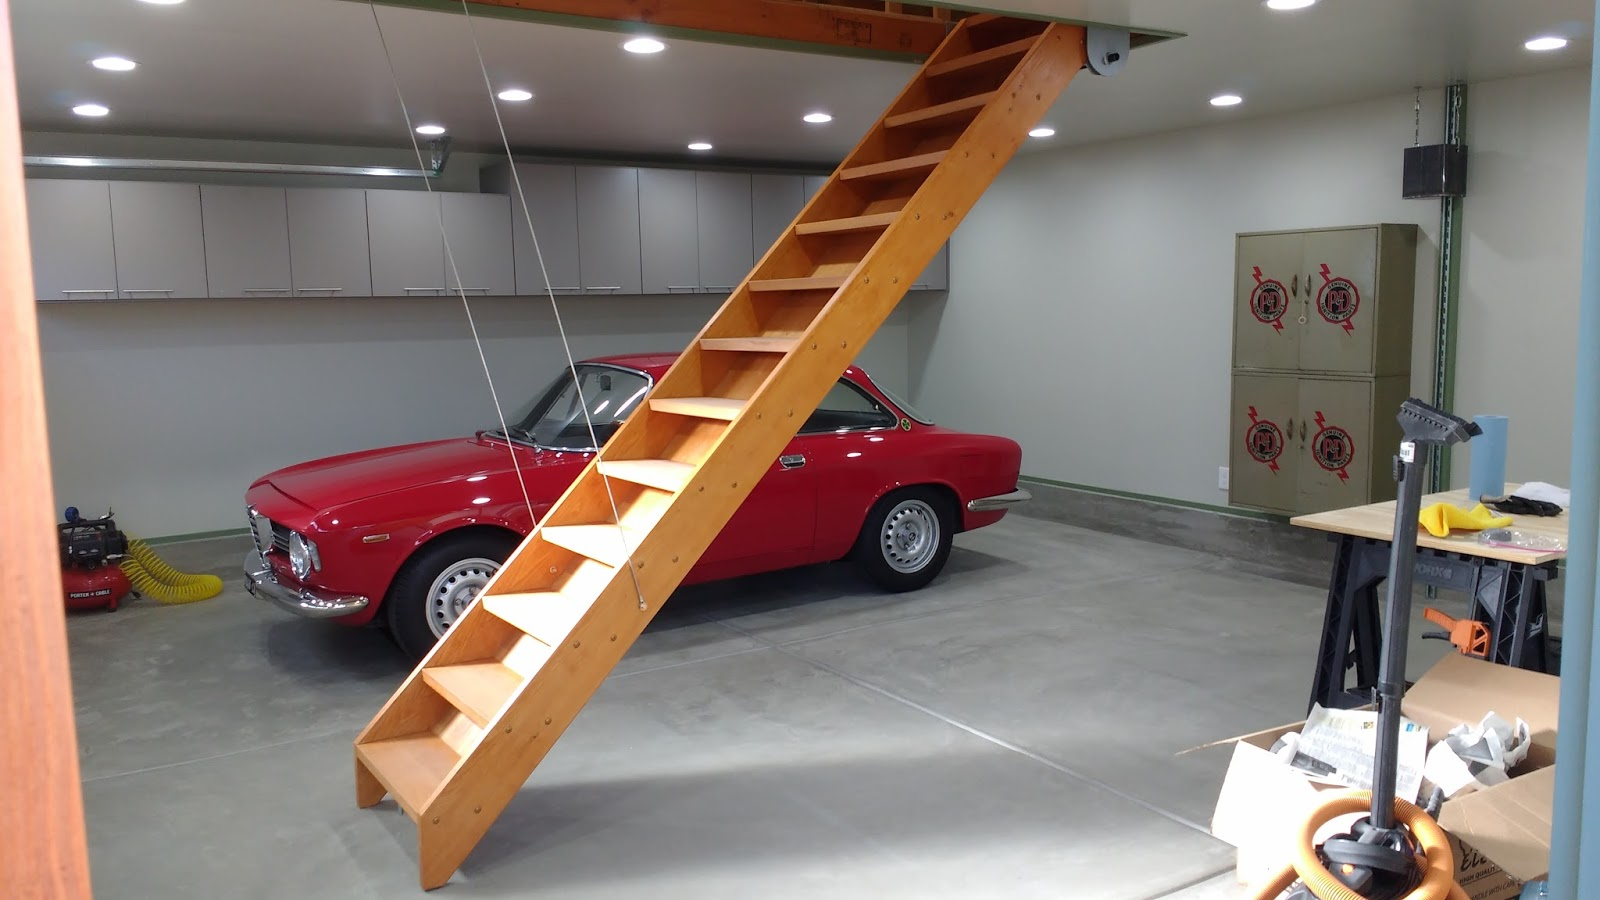 We Just Finished Building Our Garage. Probably The Most Interesting Feature  Is The Attic Stairway. Most People With Attics Have Used Those Weak And  Narrow ...